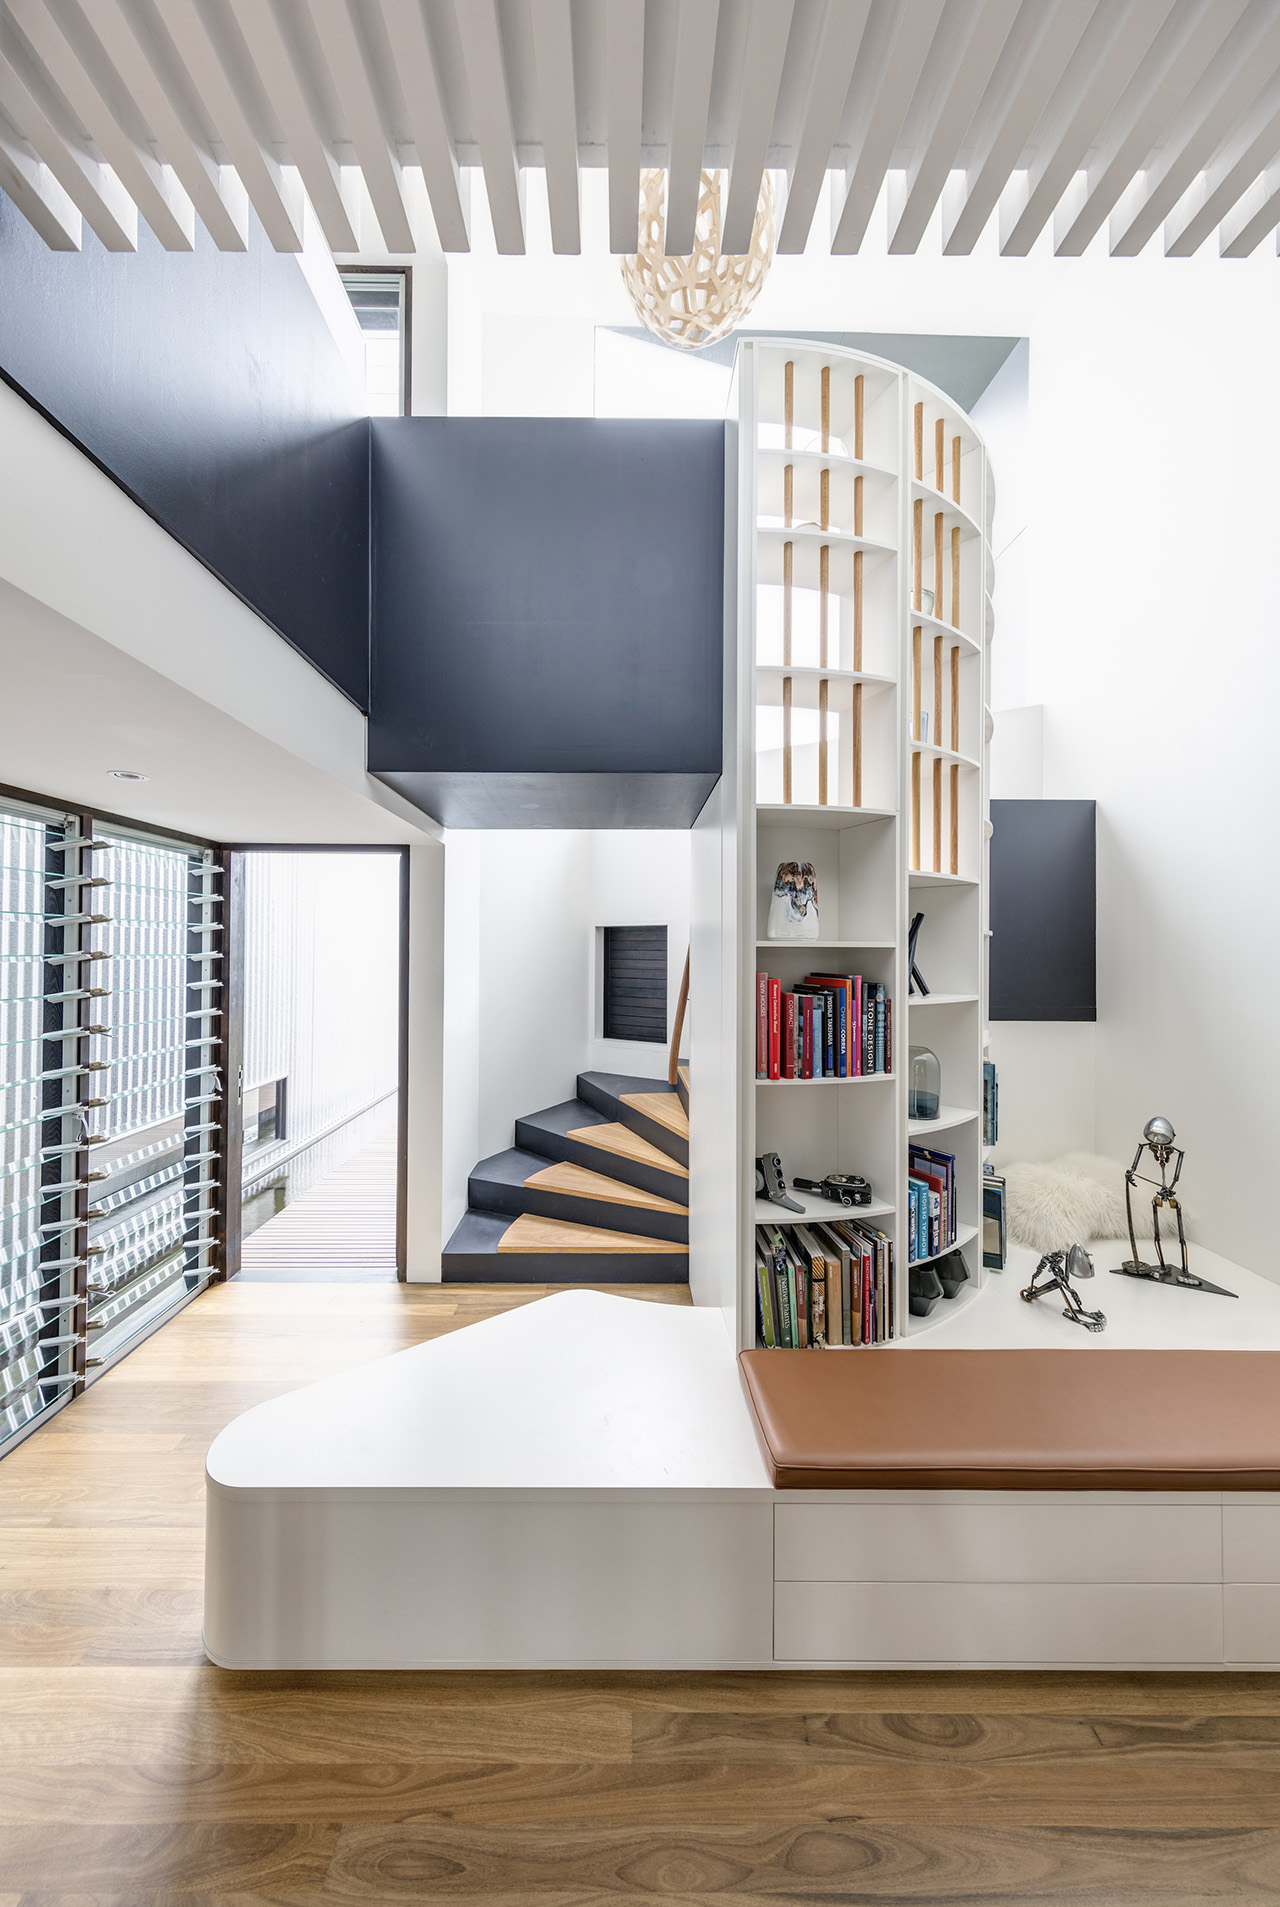 Spiral staircase leading to the second floor serving a second purpose to create a reading nook.